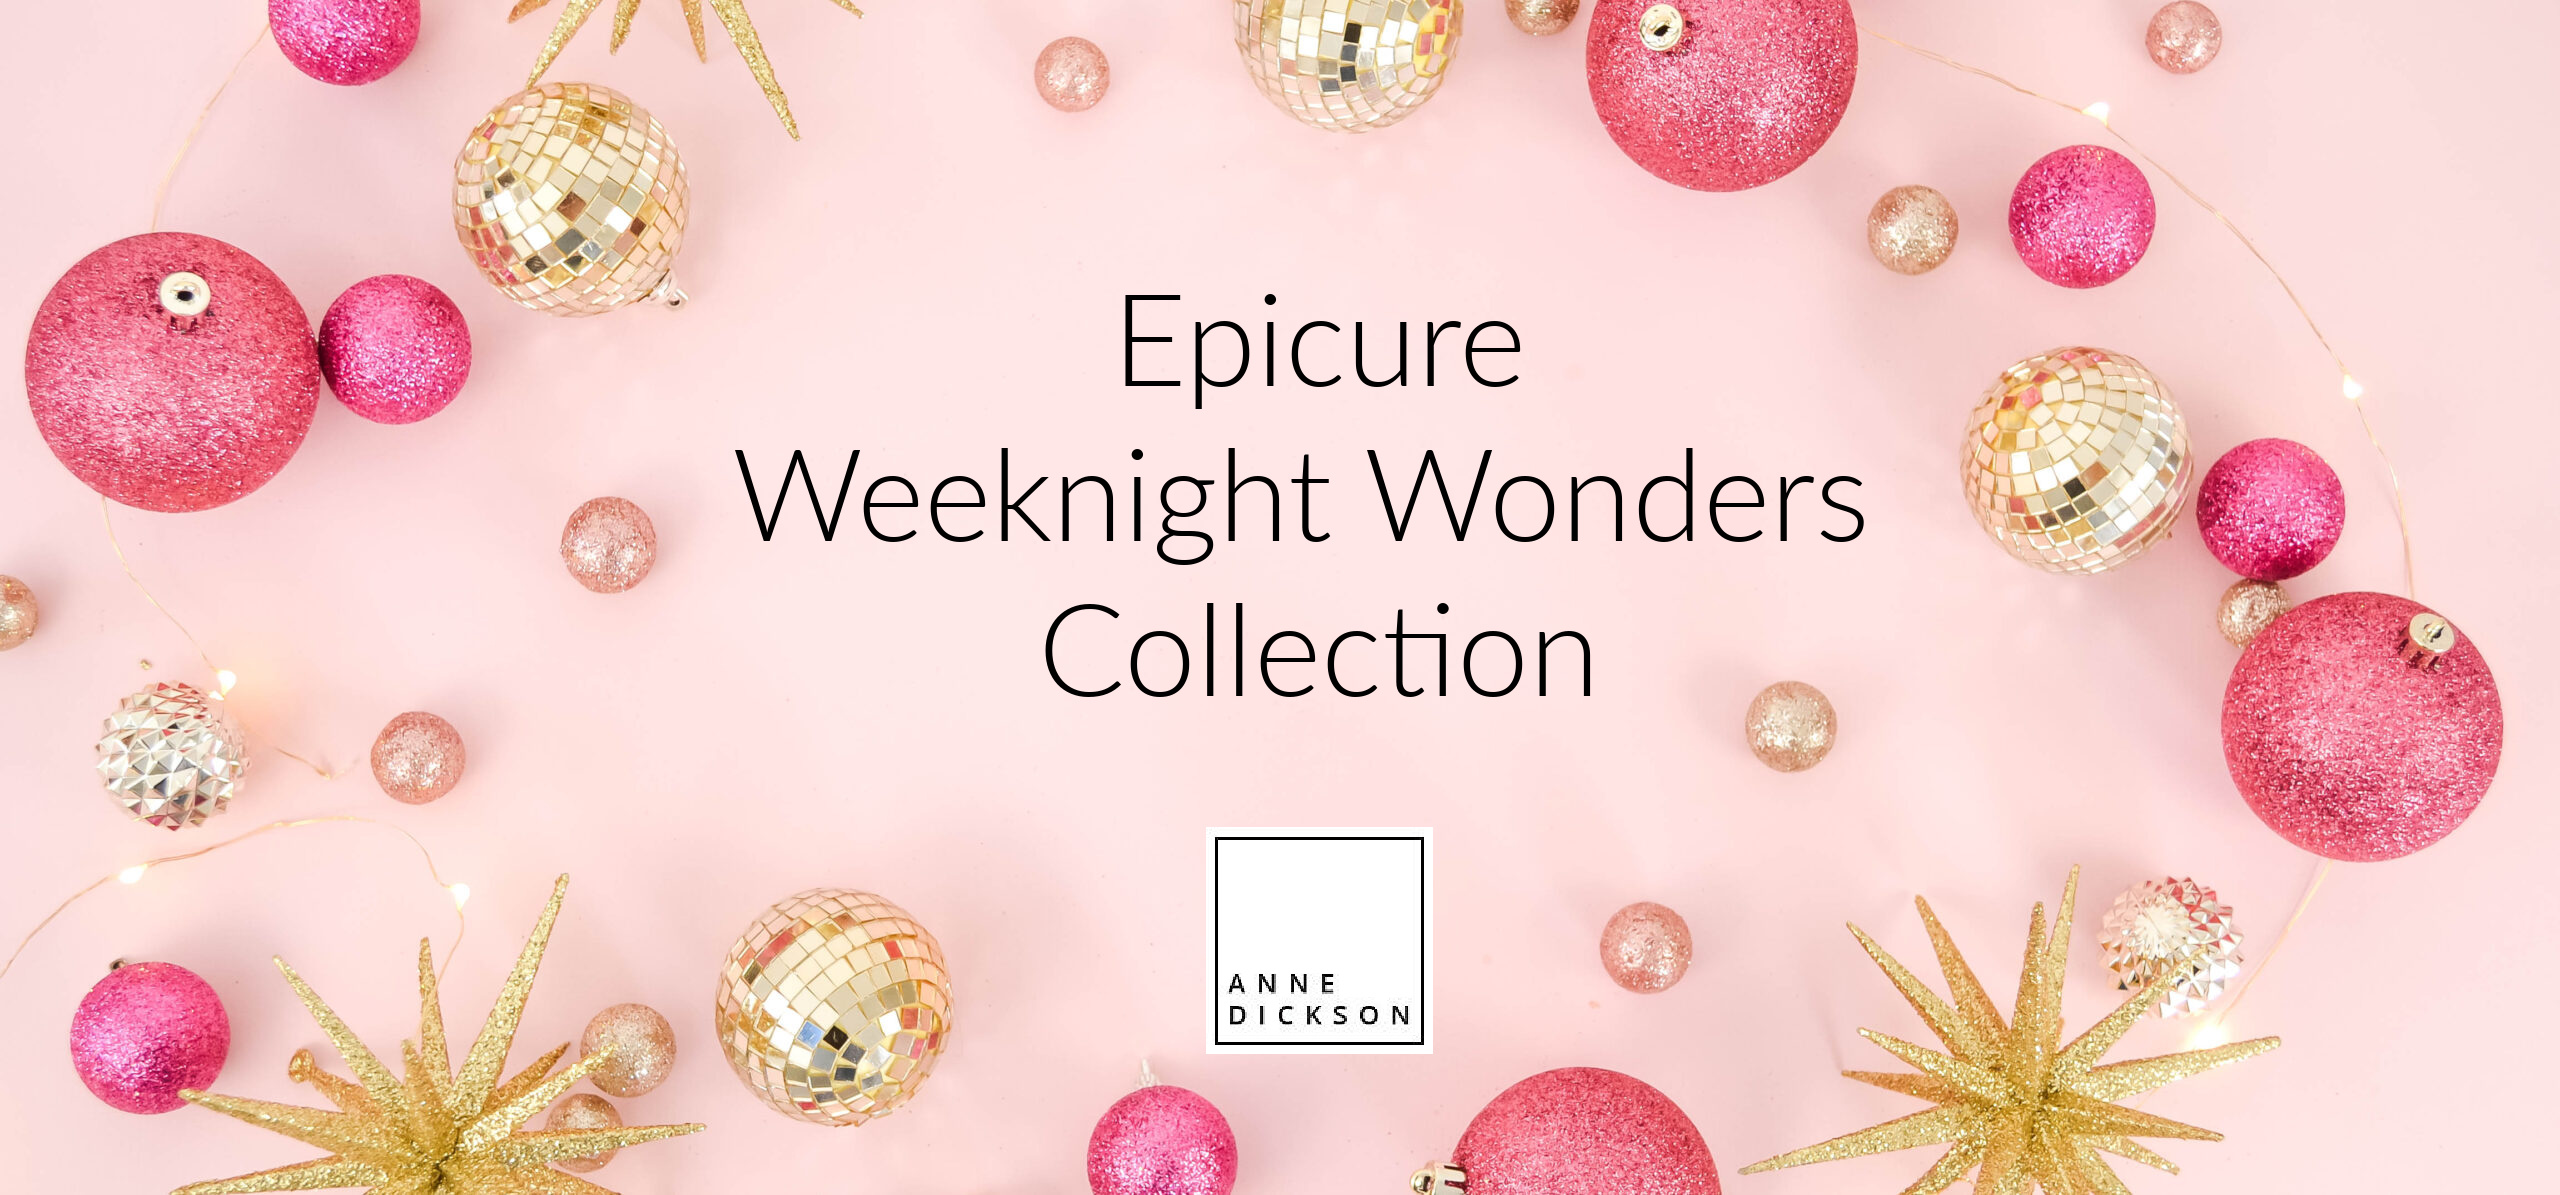 Weeknight Wonders Collection